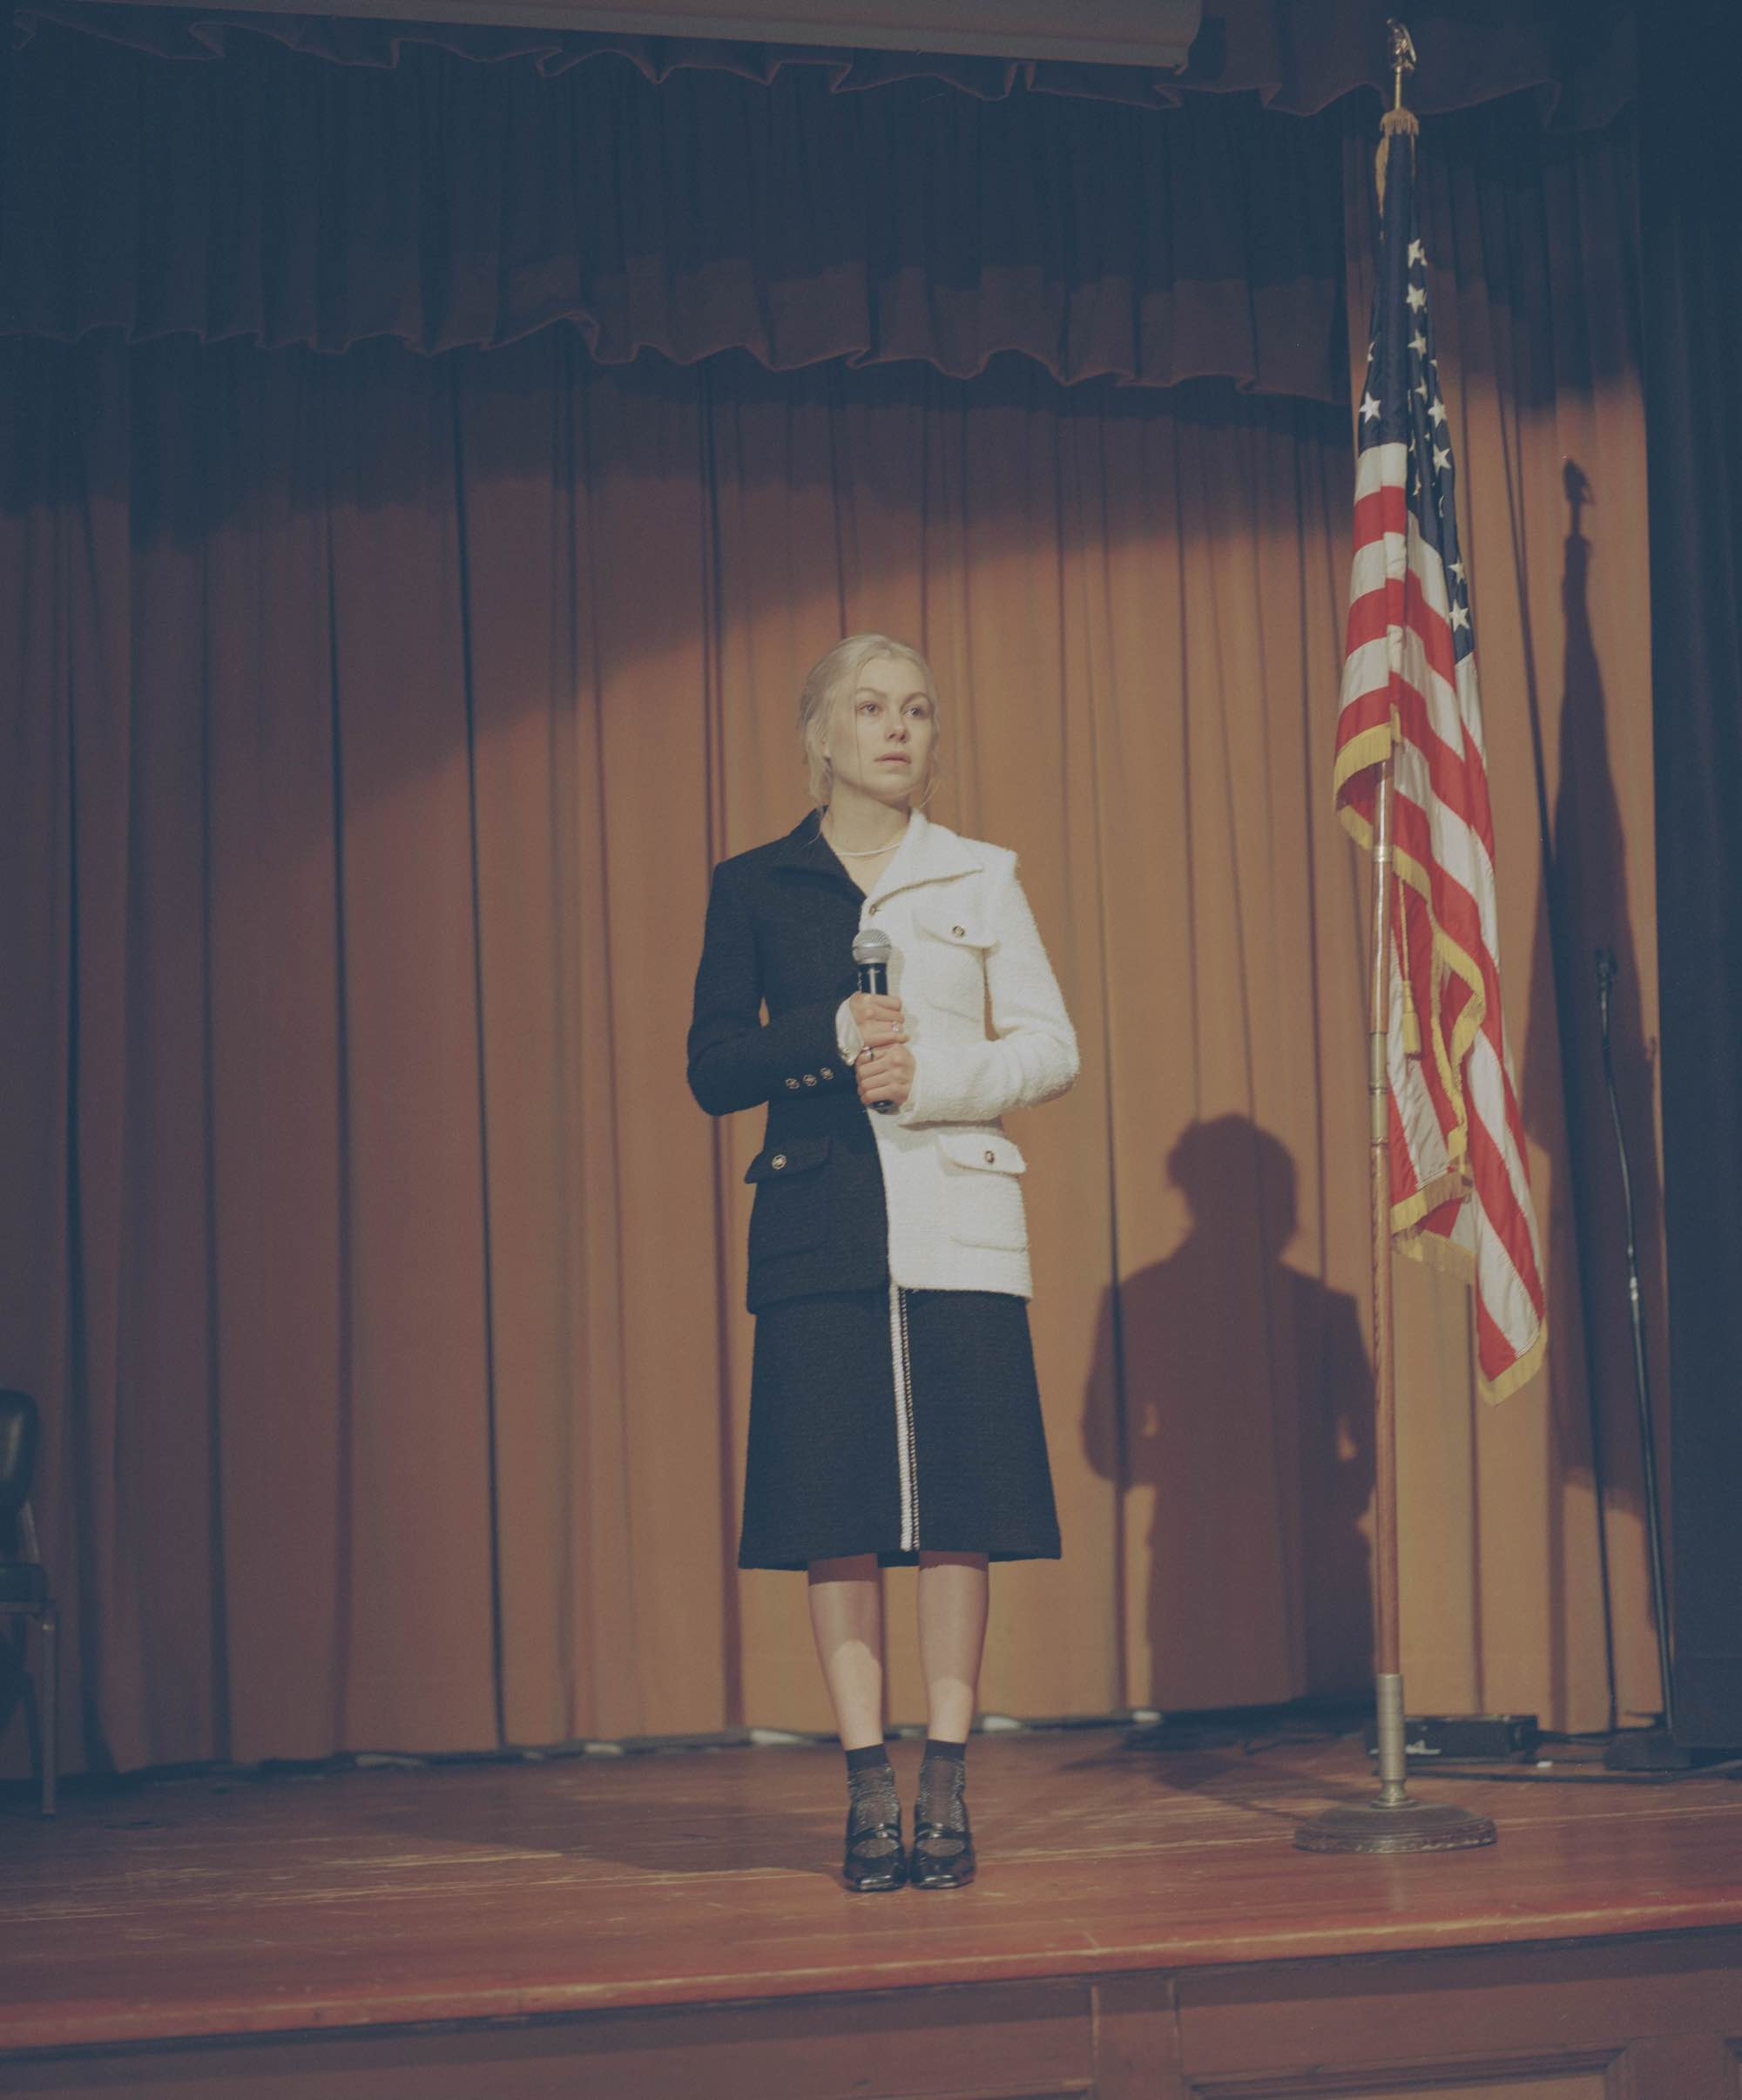 Phoebe bridgers in black and white suit